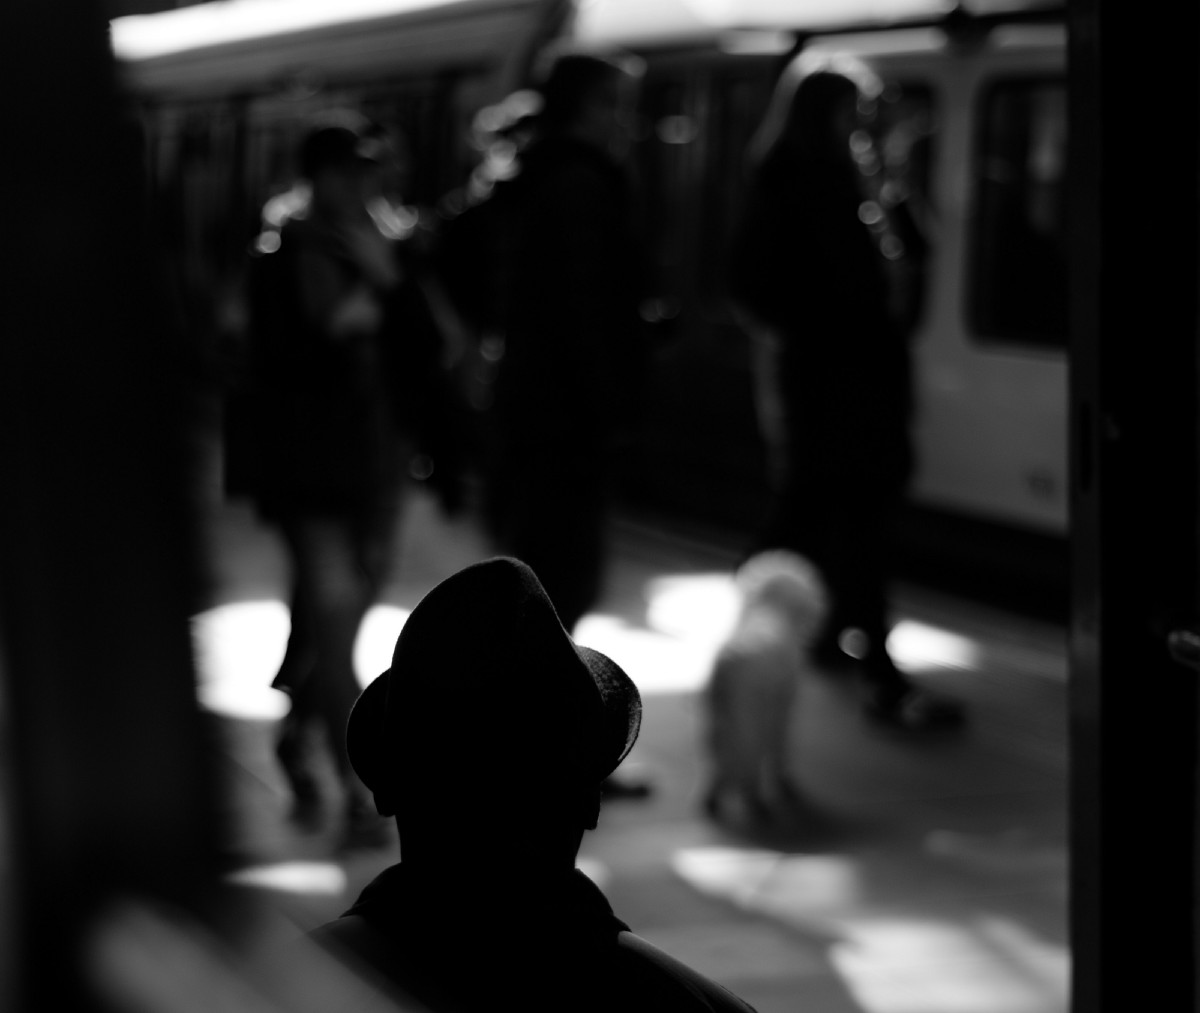 Shadowy man in train station